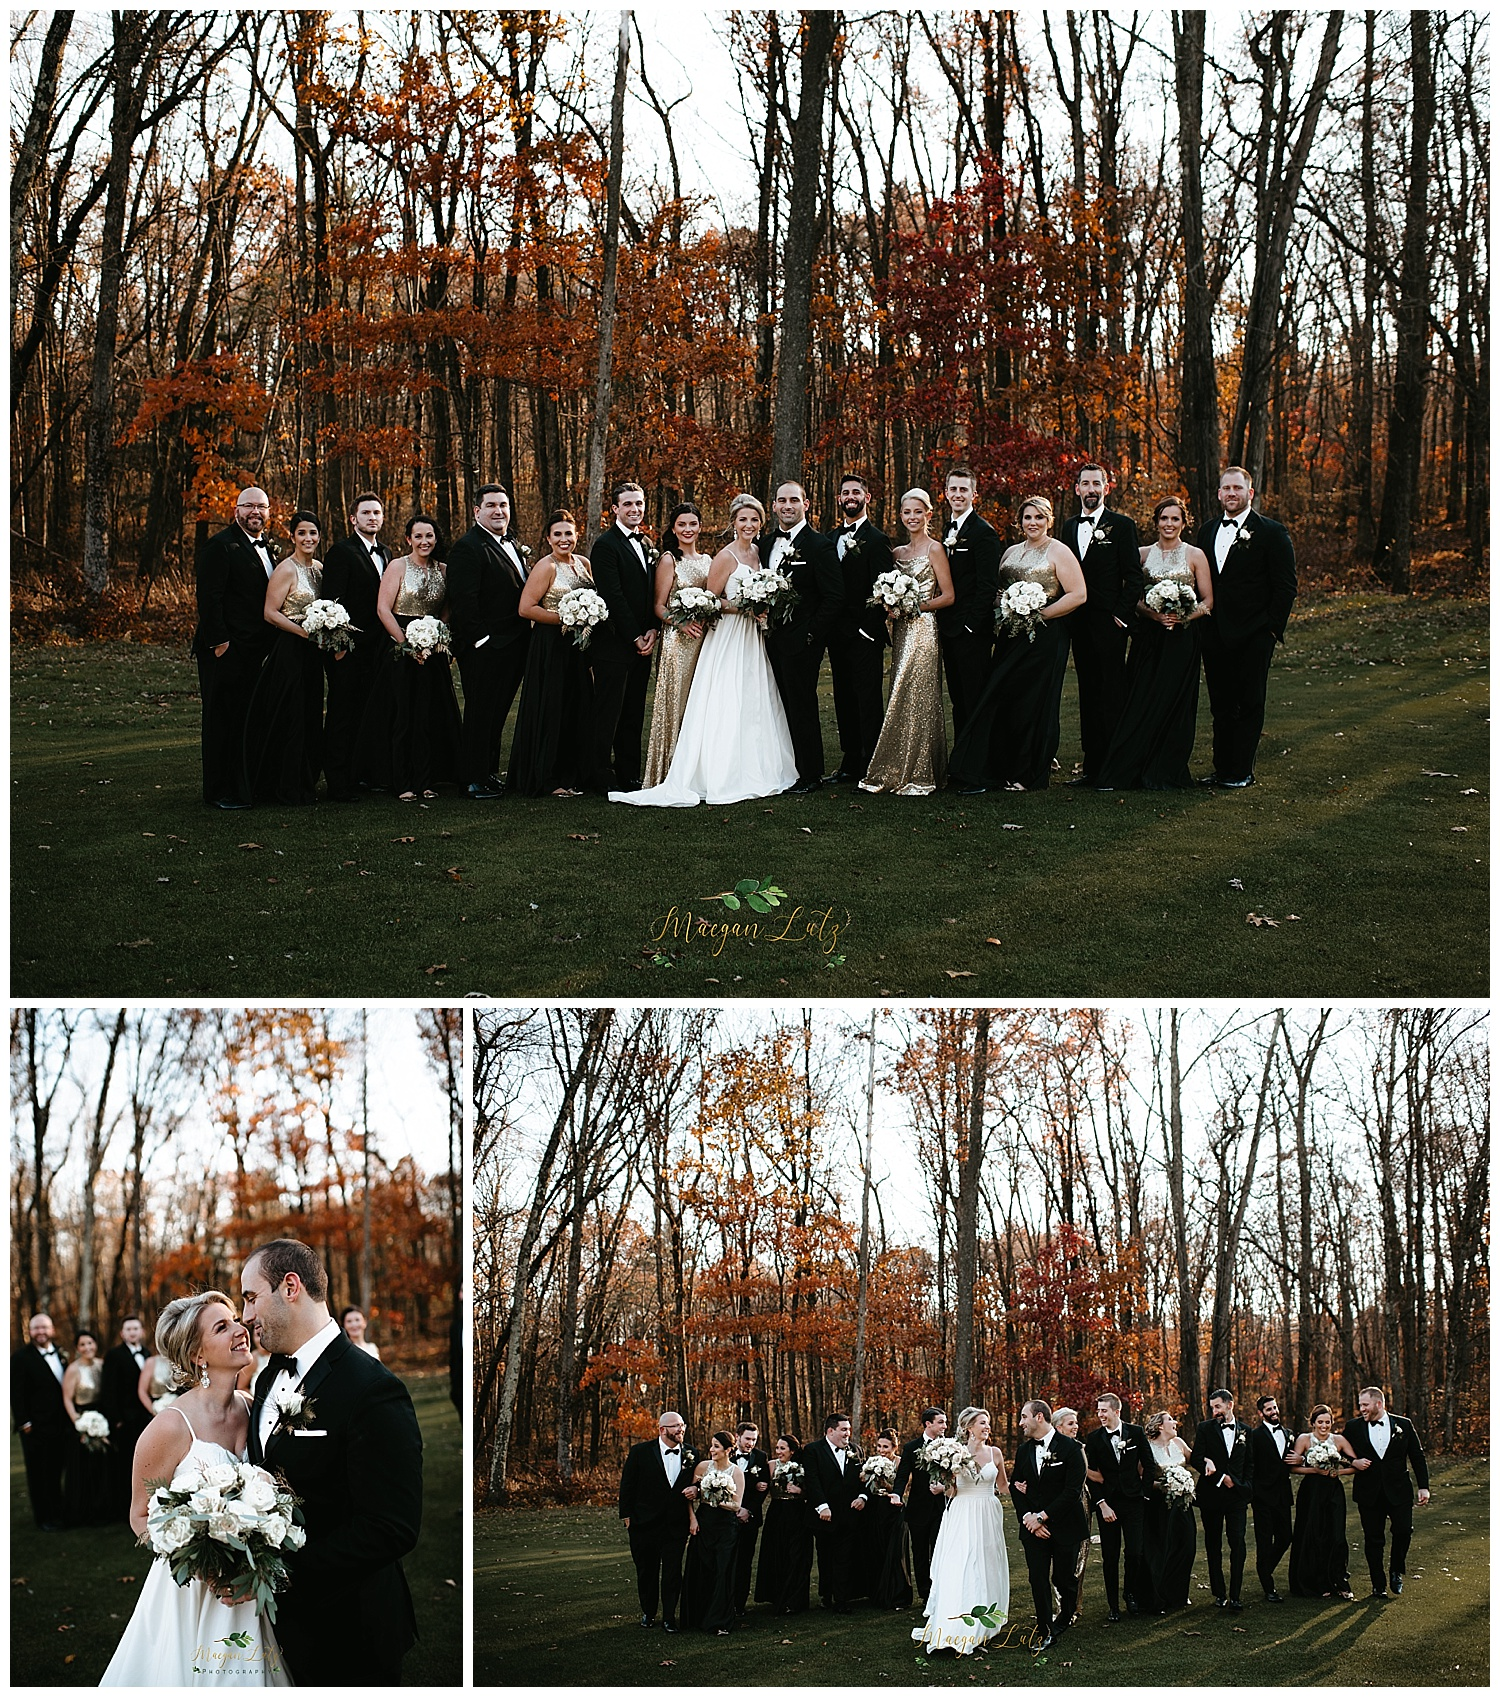 NEPA-Wedding-Photographer-at-Sand-Springs-Country-Club-Drums-PA_0024.jpg